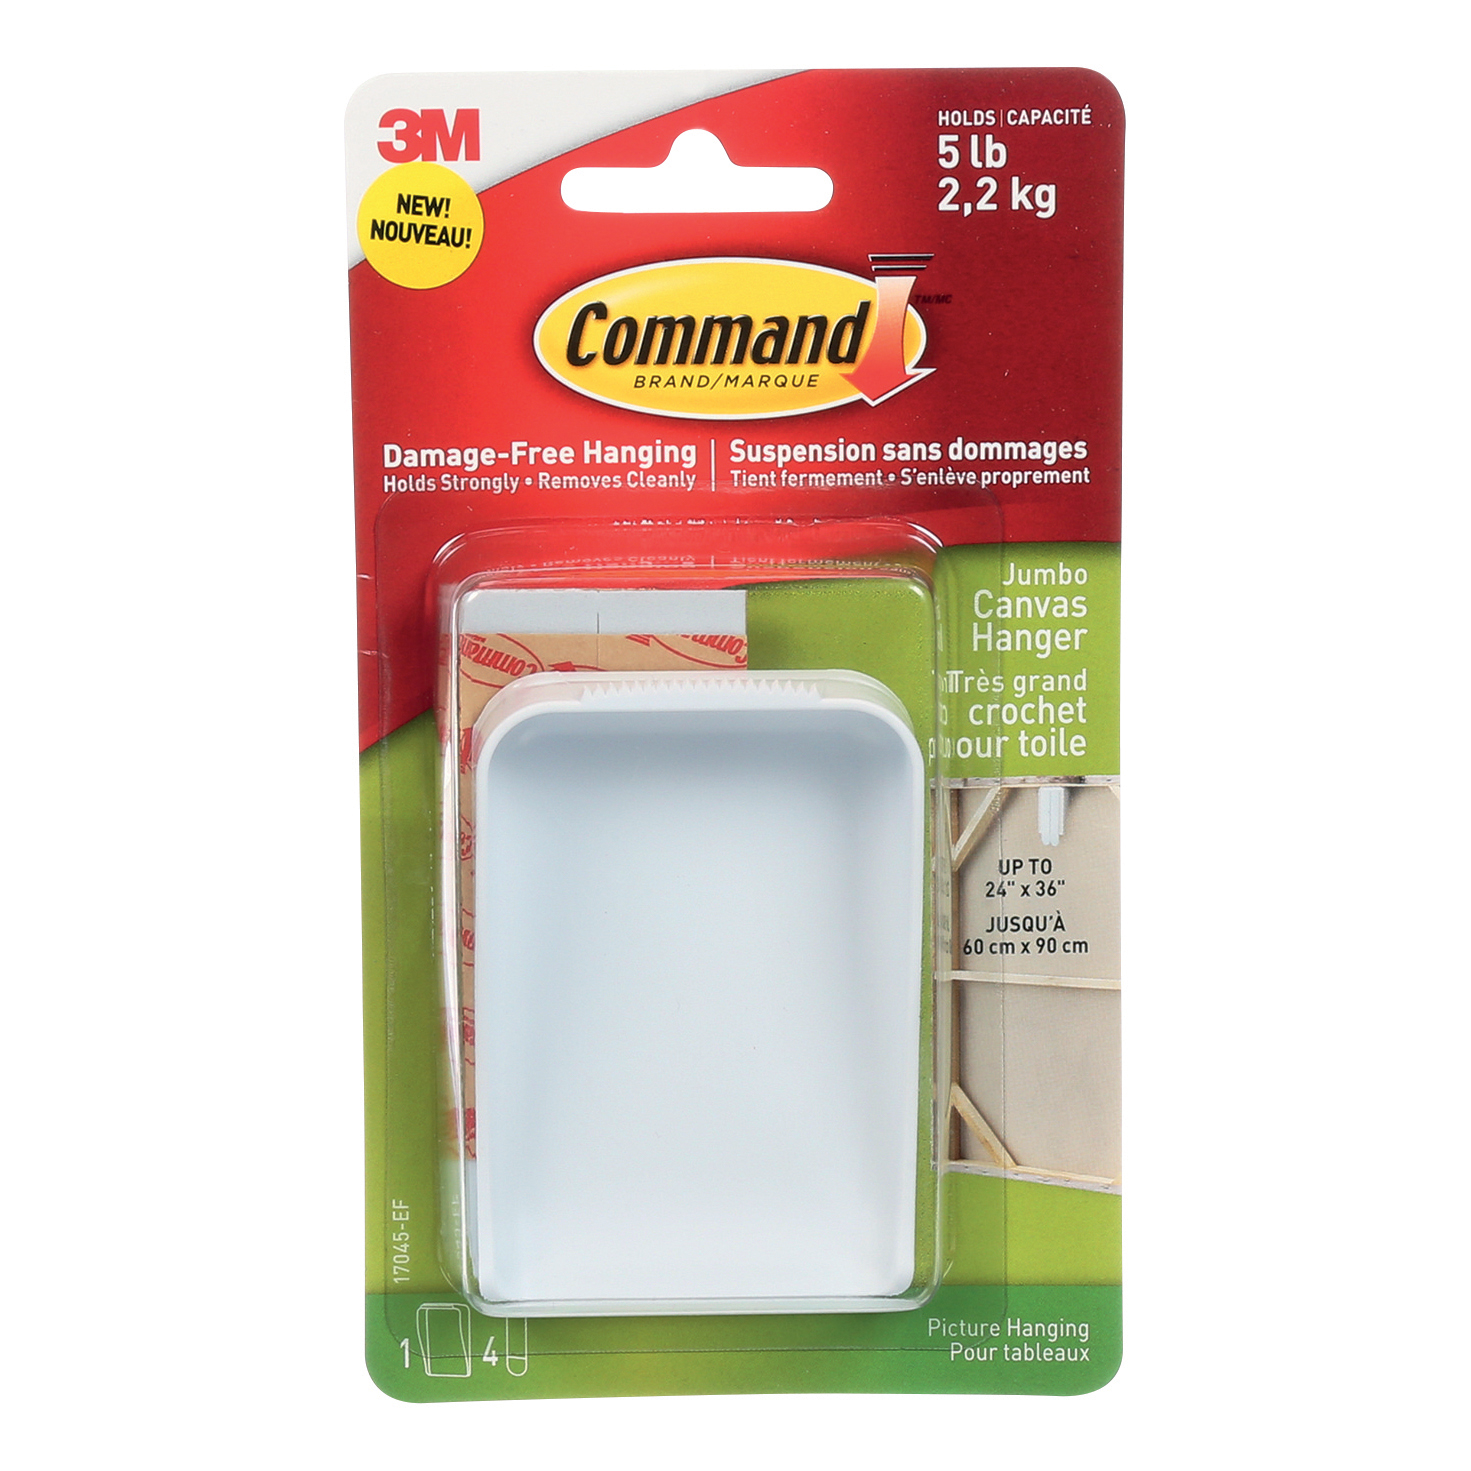 Command Hanger for Canvas Artwork Damage-free Hanging with 4 Strips Large Ref 70006954393